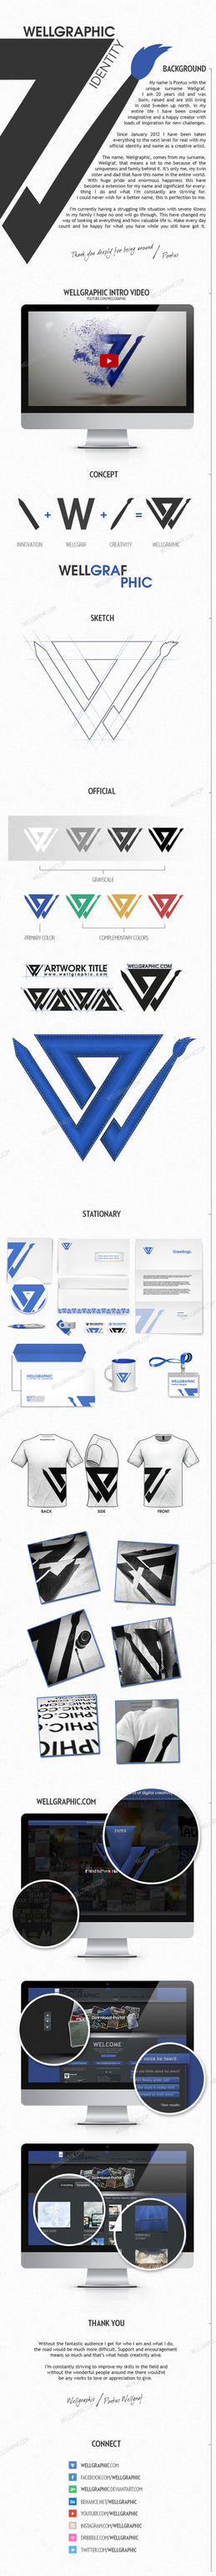 WELLGRAPHIC IDENTITY by wellgraphic